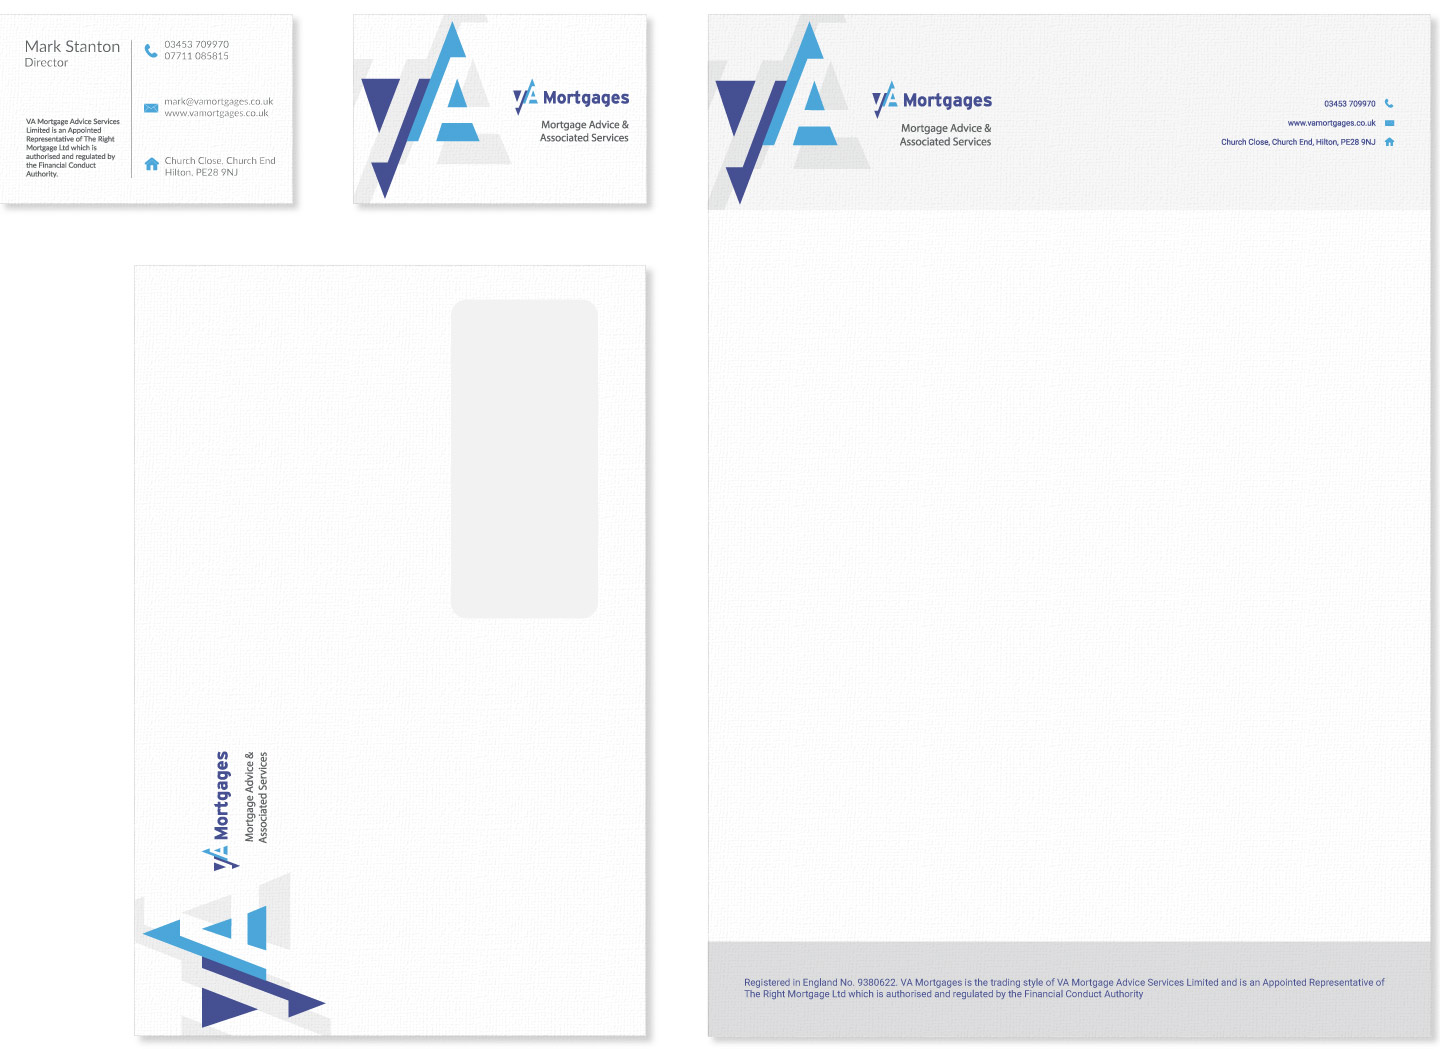 VA Mortgages stationary including business cards, letterhead and envelope designed by Kabo Creative